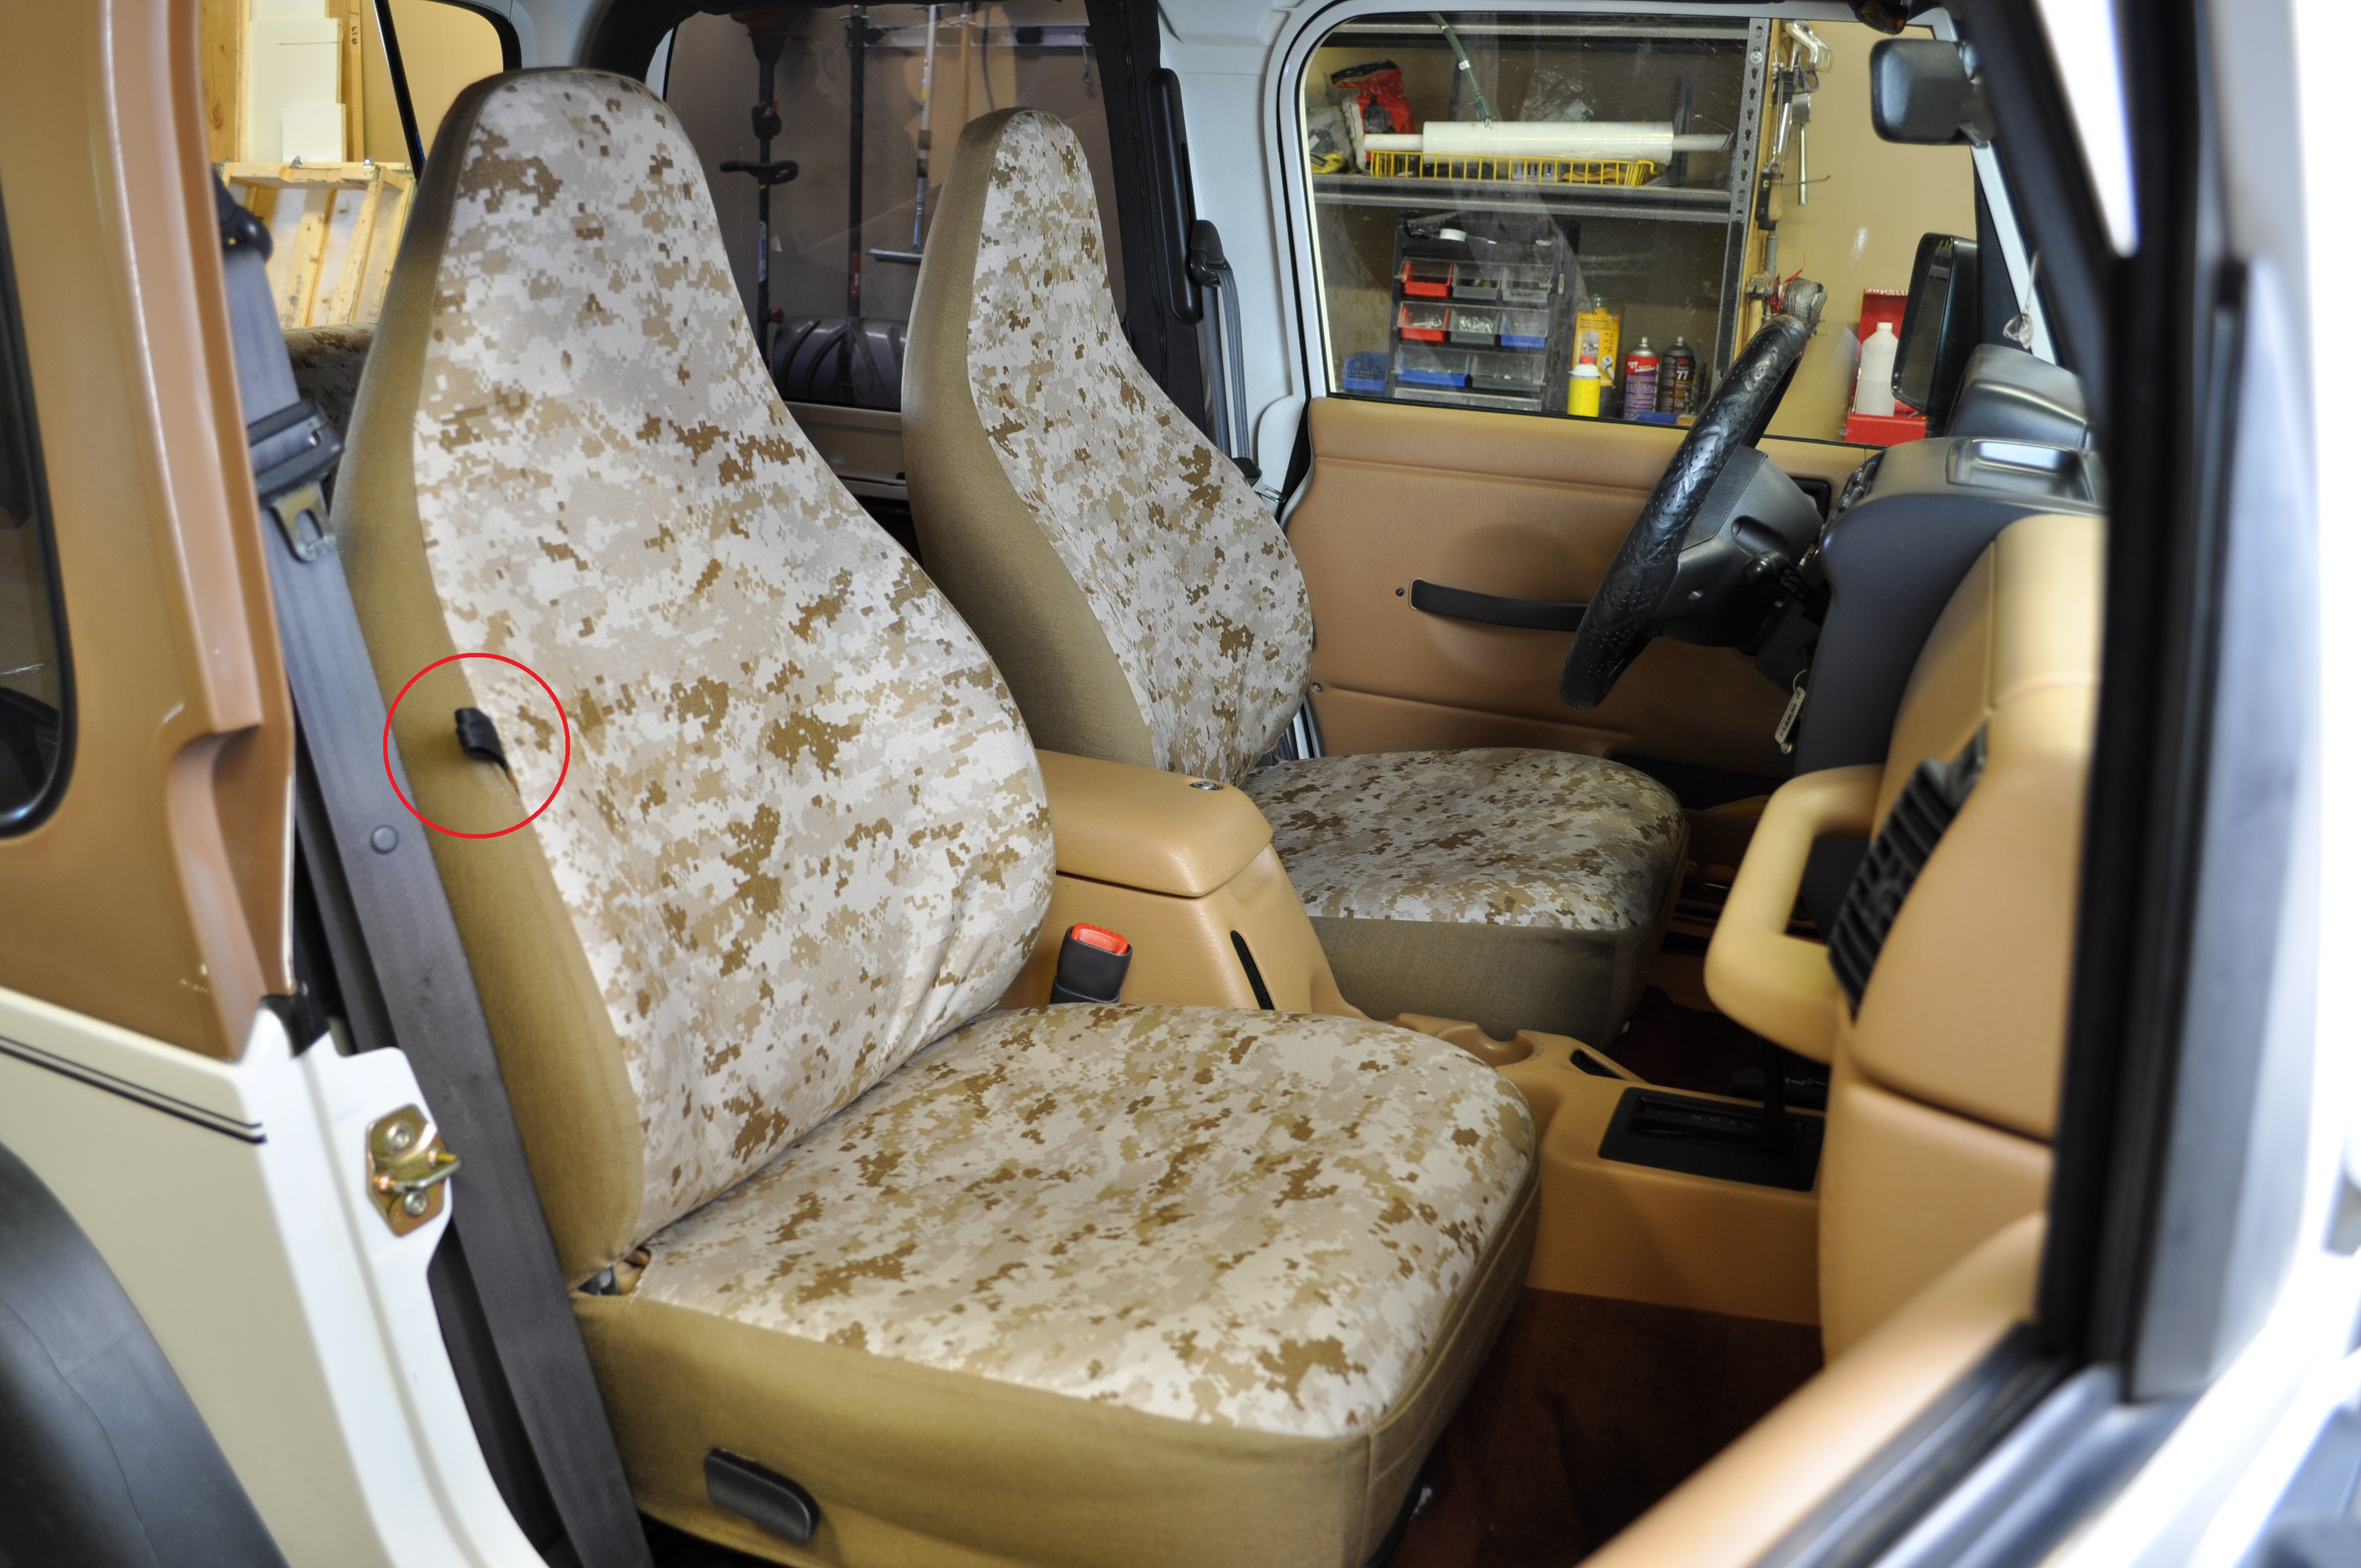 Miraculous Seat Covers For Your 1999 Jeep Wrangler Marathon Seat Covers Machost Co Dining Chair Design Ideas Machostcouk